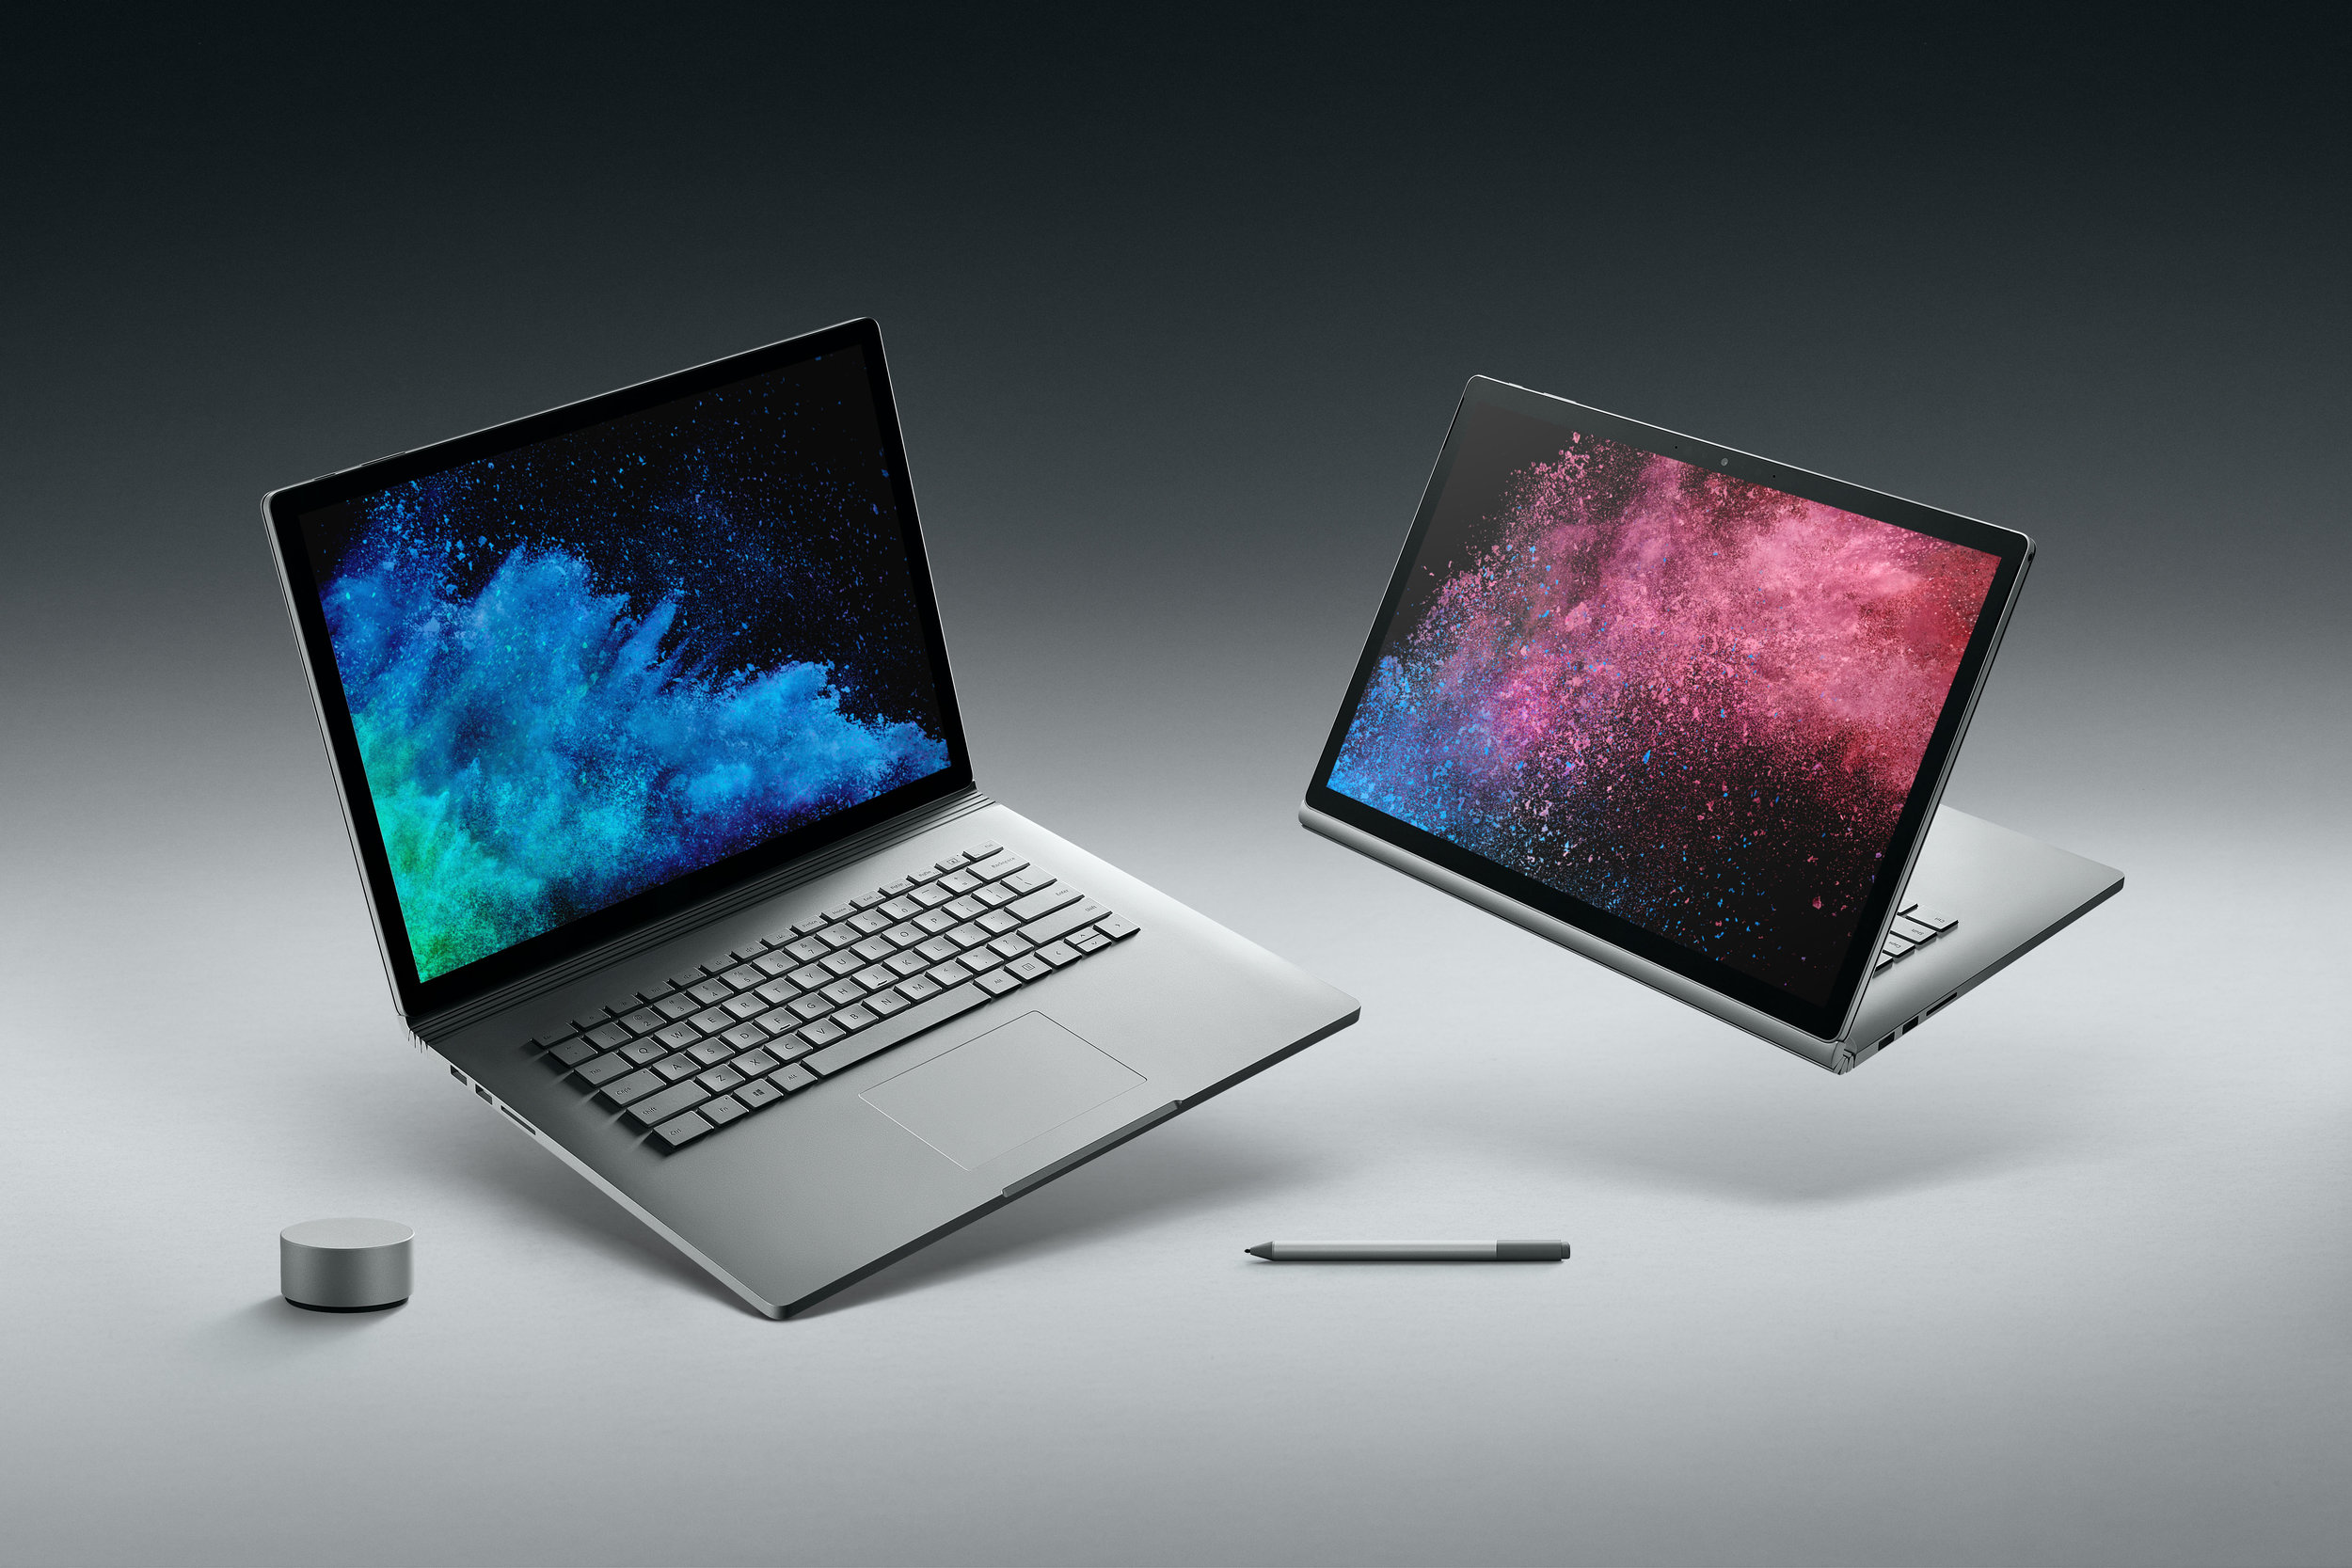 The exterior design hasn't changed, but the internals of the new Surface Book 2 are getting a major upgrade.